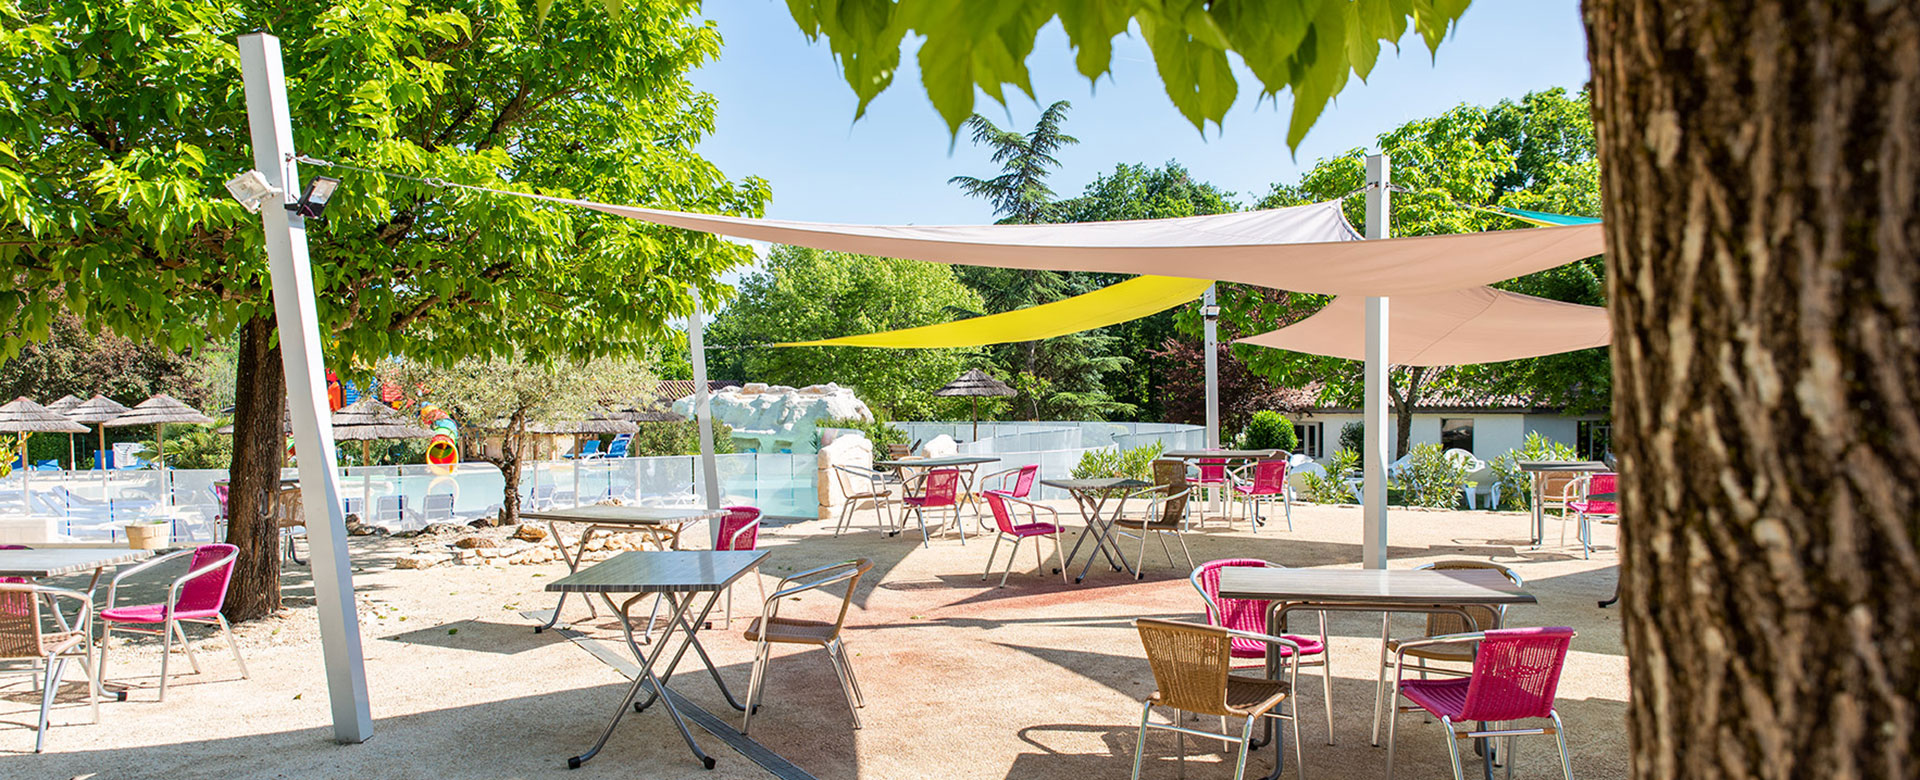 Camping l'Évasion's restaurant located in the Quercy